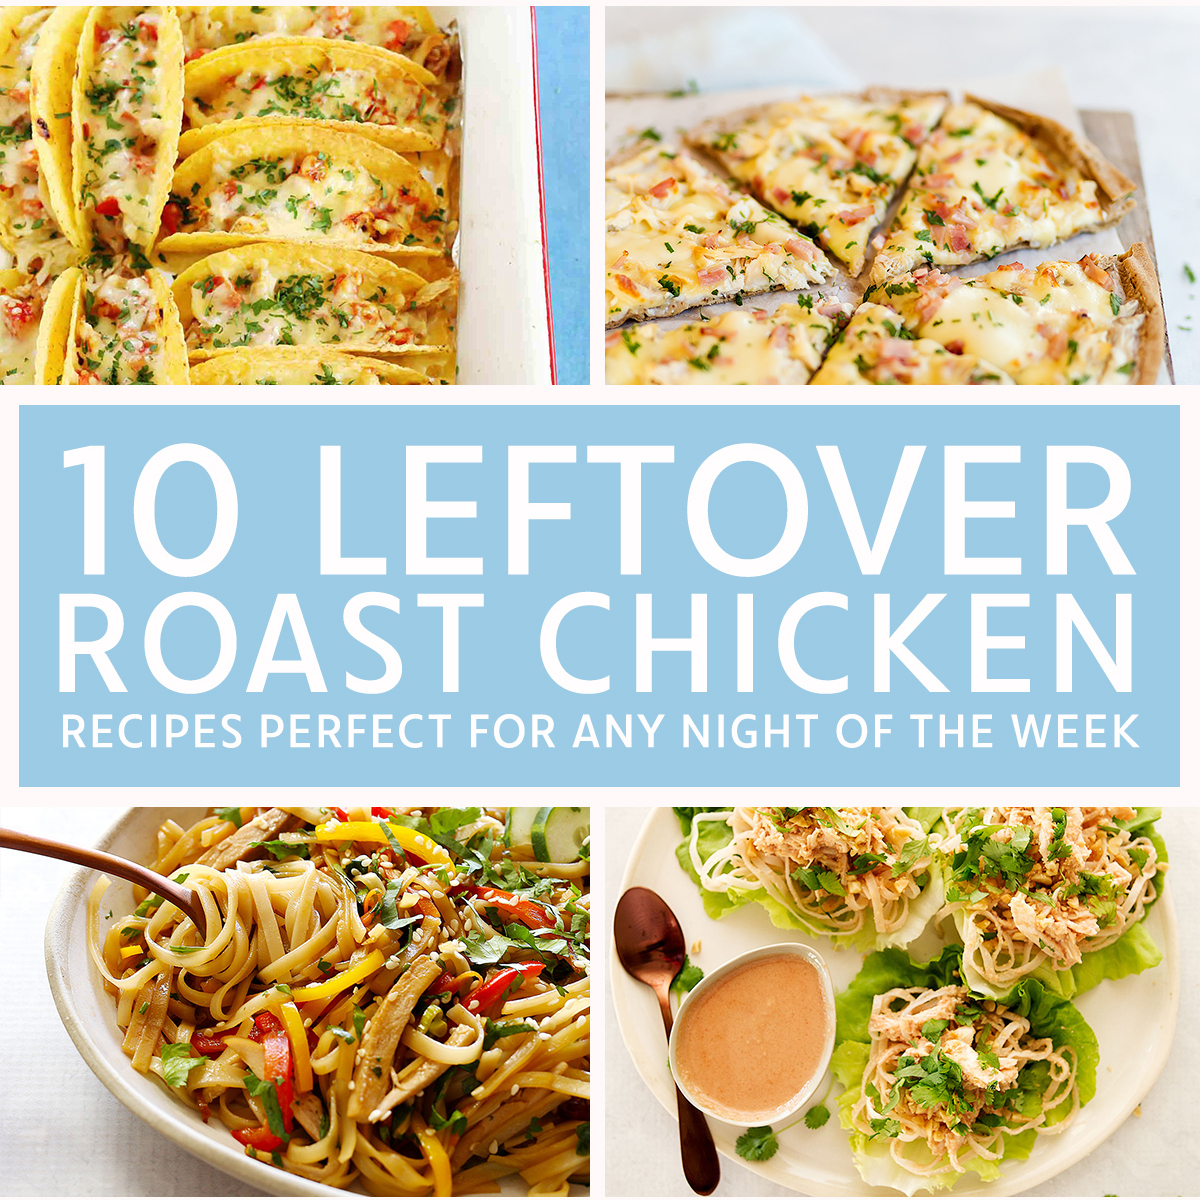 10 Leftover Roast Chicken Recipes, Perfect For Any Night